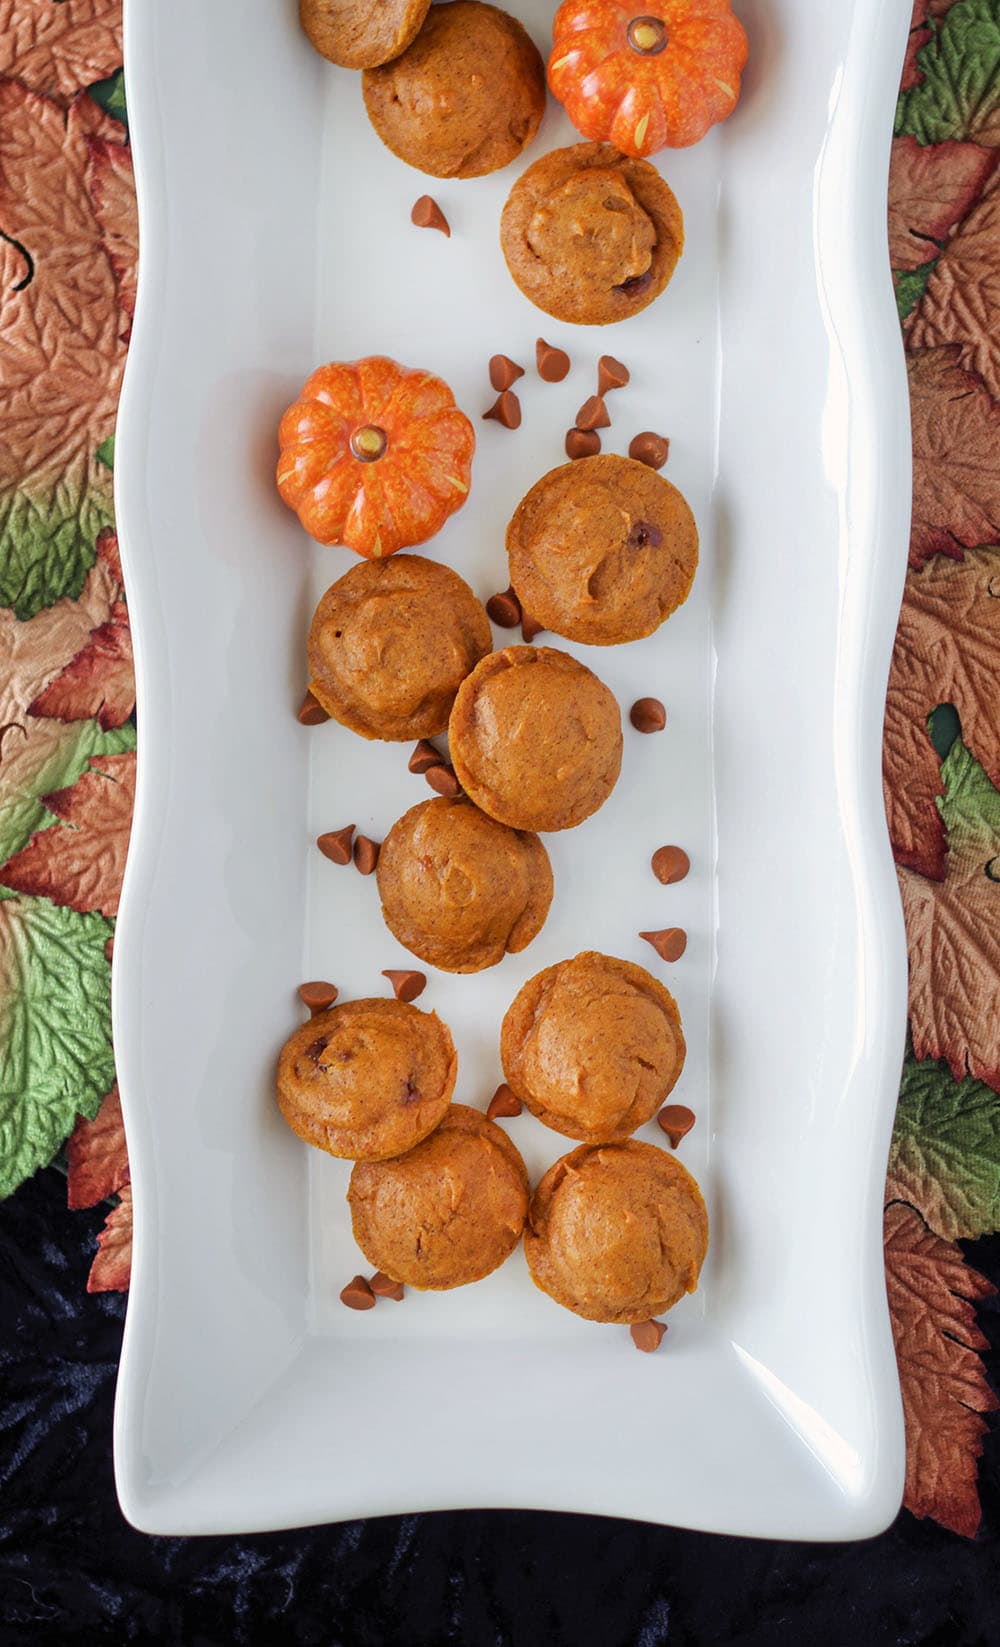 Mini Pumpkin Cake Bites Recipe - perfect little pumpkin cakes to serve at holiday gatherings.